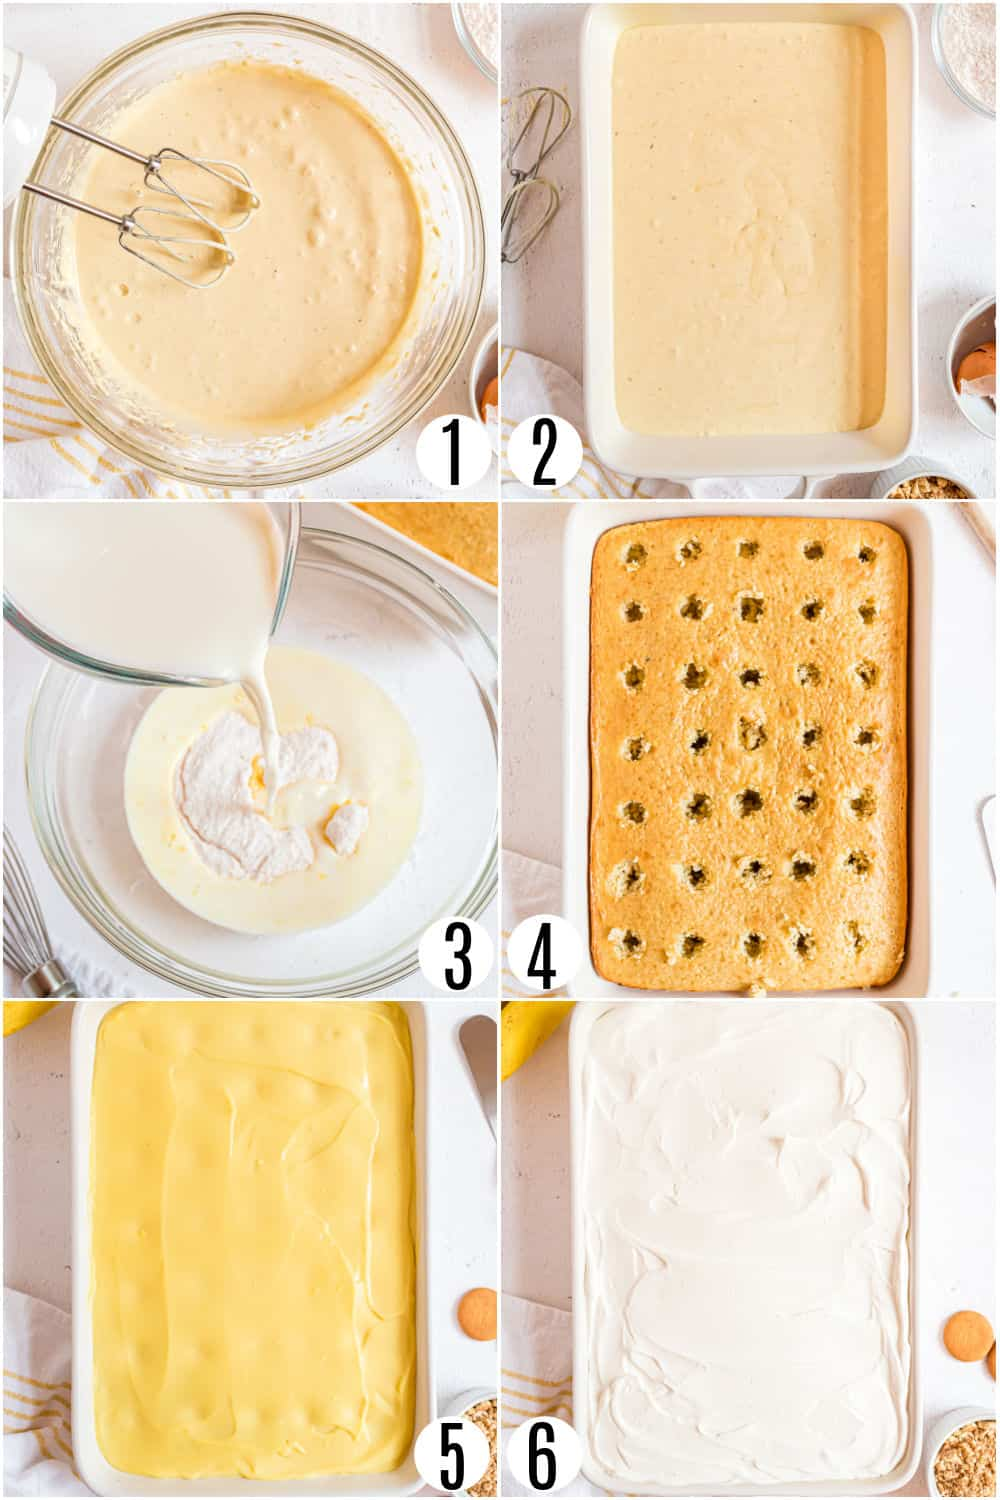 Step by step photos showing how to make banana pudding poke cake.